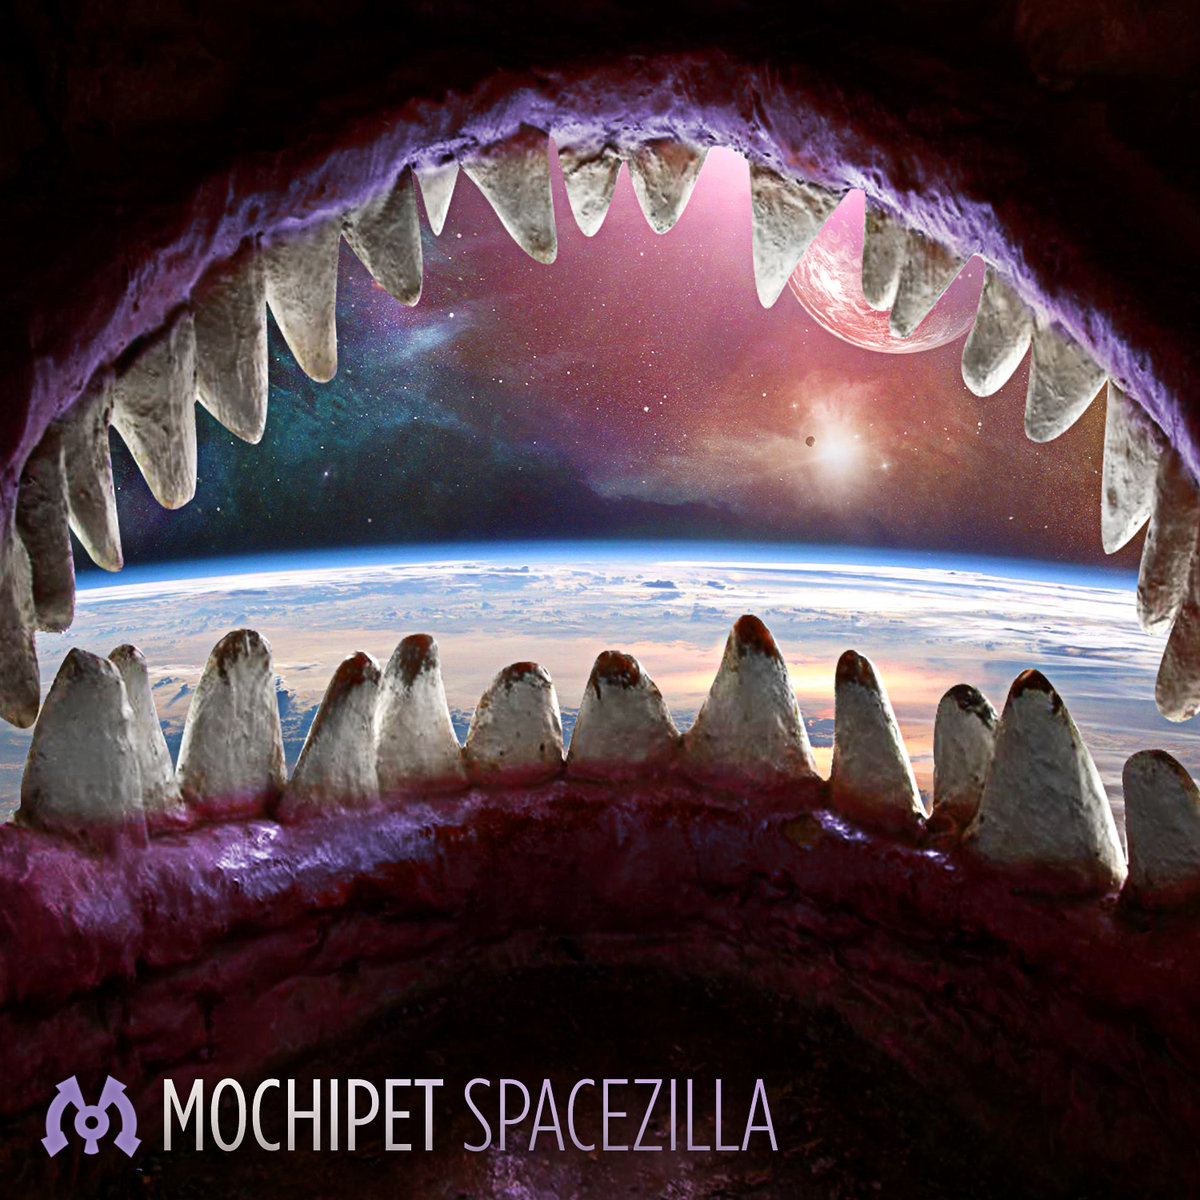 Mochipet - For When the World Ends @ 'Spacezilla' album (electronic, dubstep)